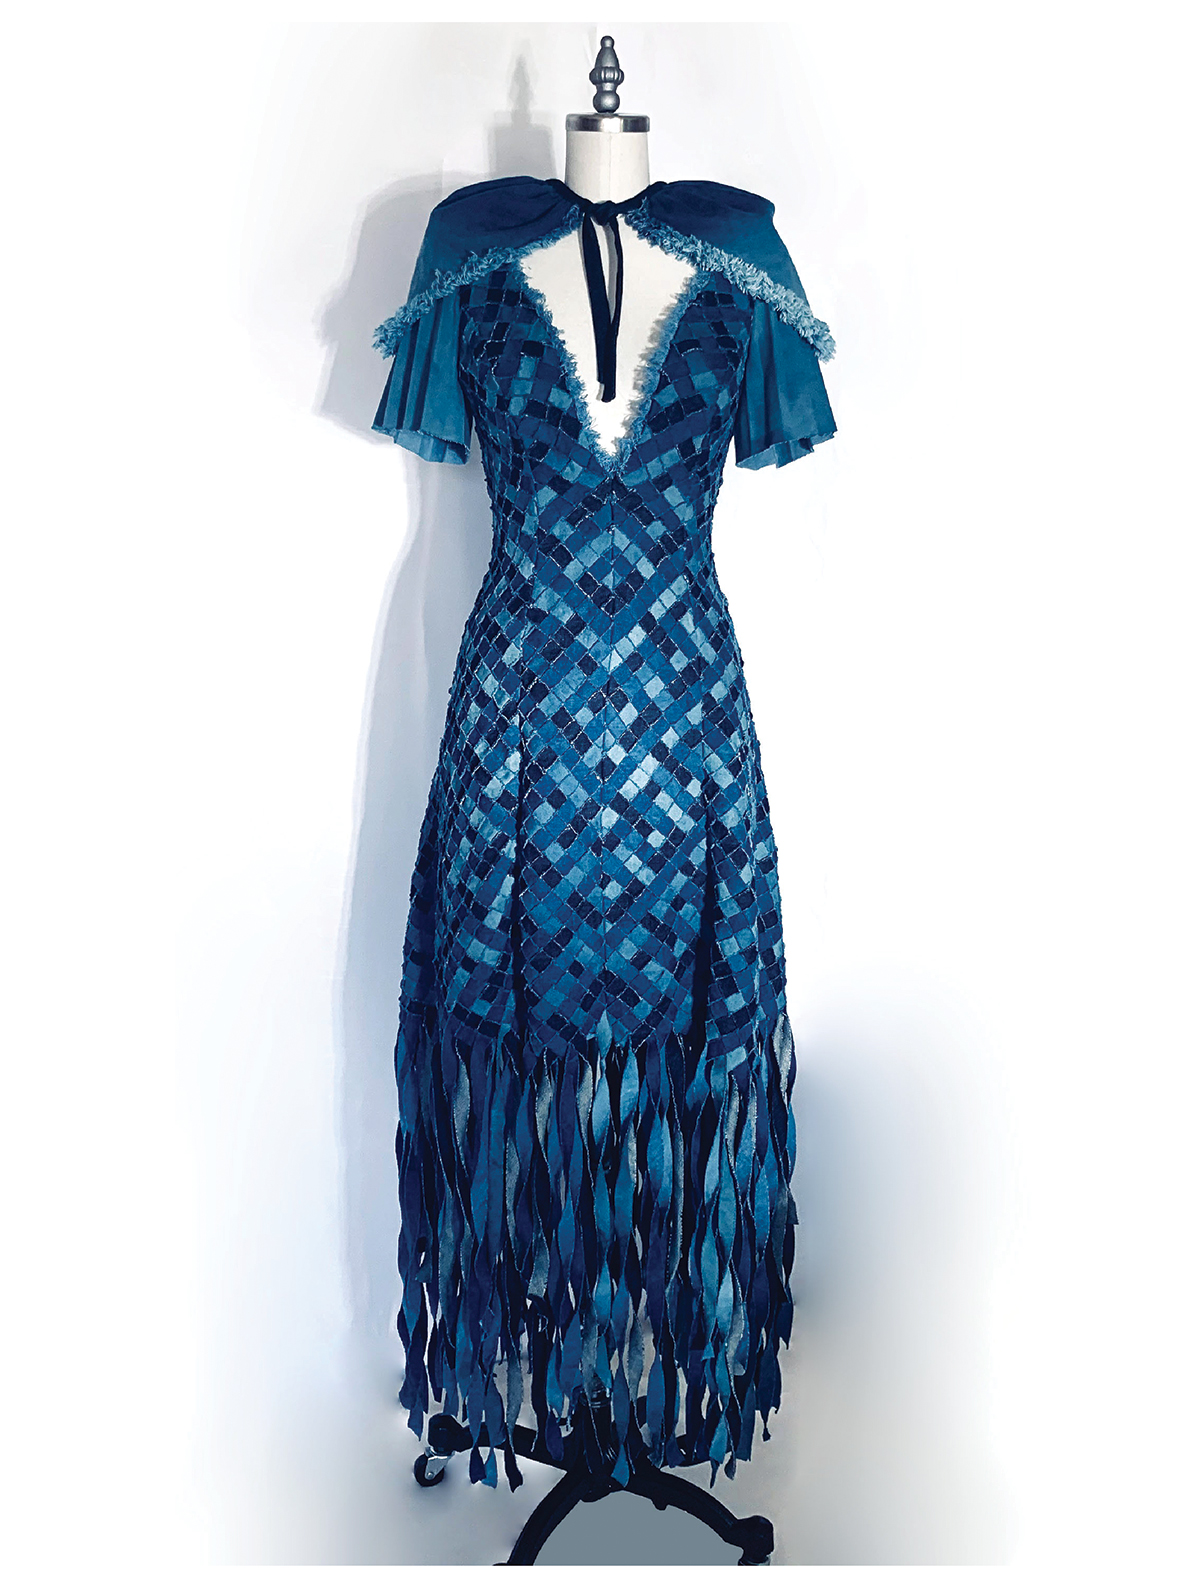 """""""Indigo Roots"""" is inspired by fashion revolutions, unconventionality, and turning traditional eveningwear motifs upside down."""